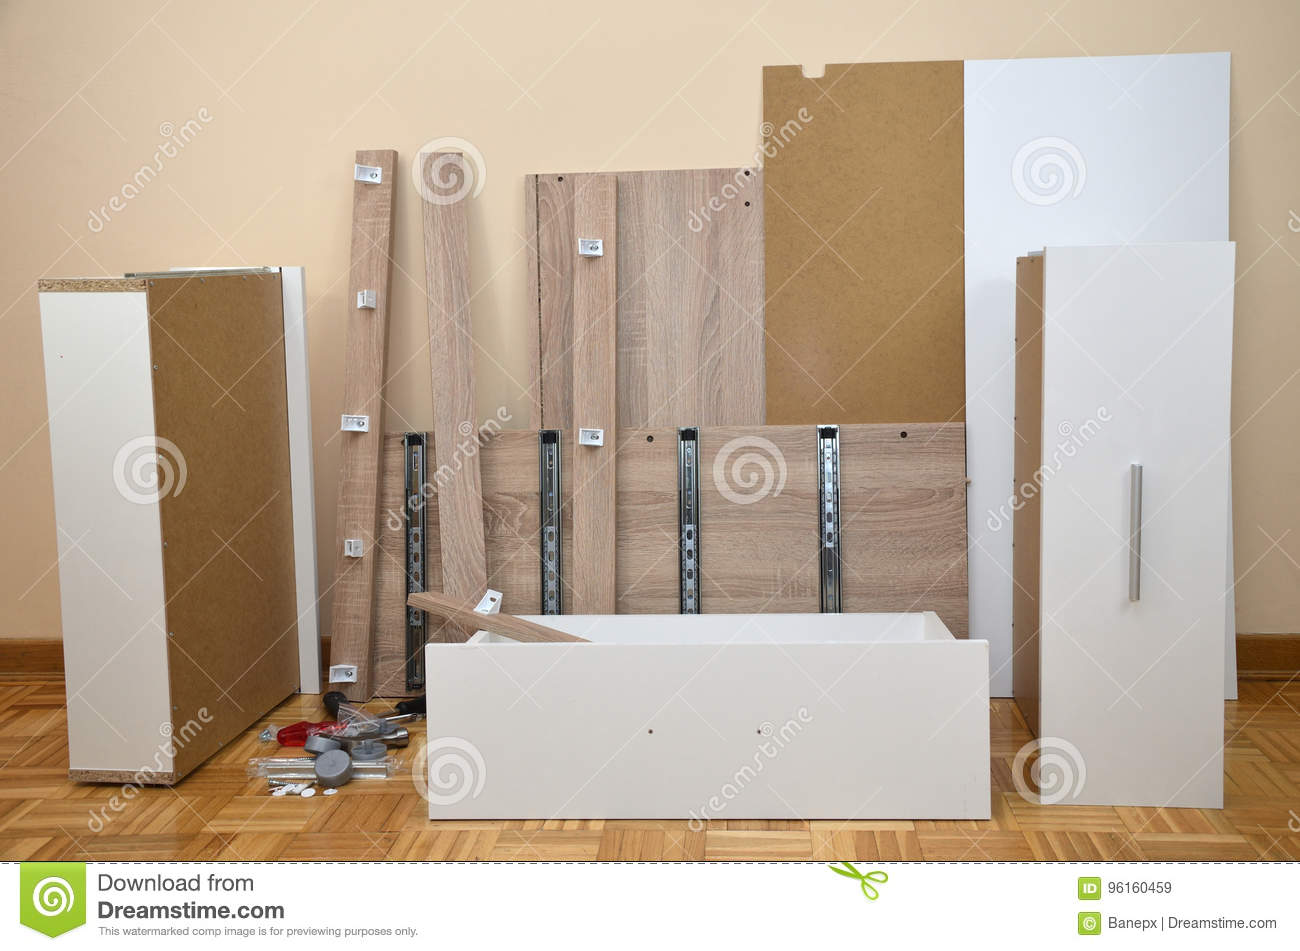 Unpacked Parts Of A Drawer Stock Image Image Of Panel 96160459